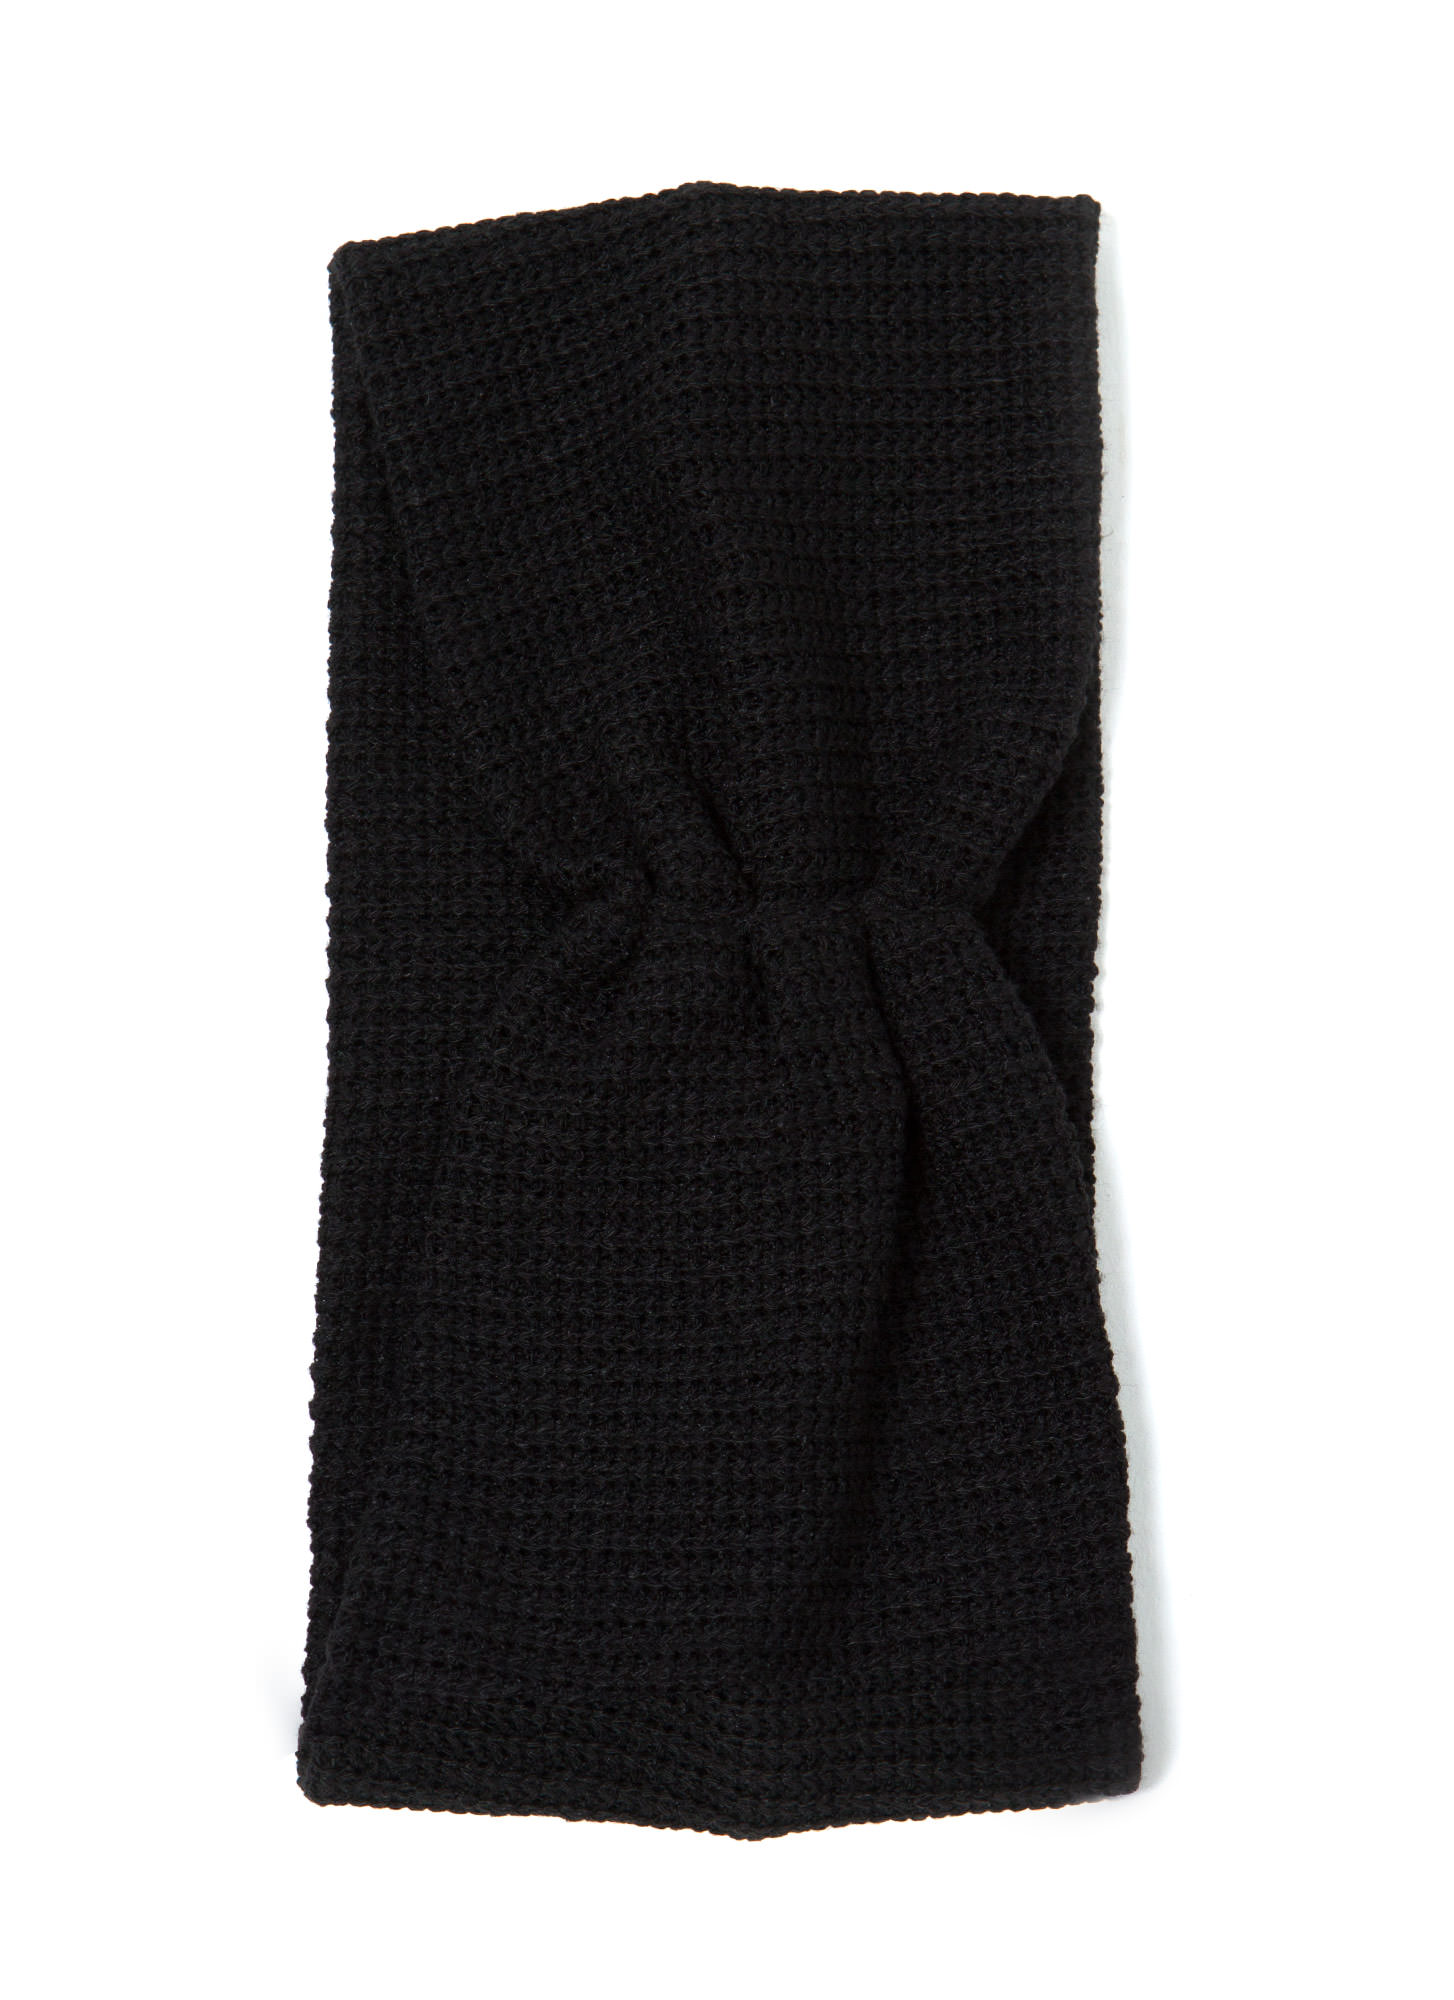 Pleated Net Headband BLACK